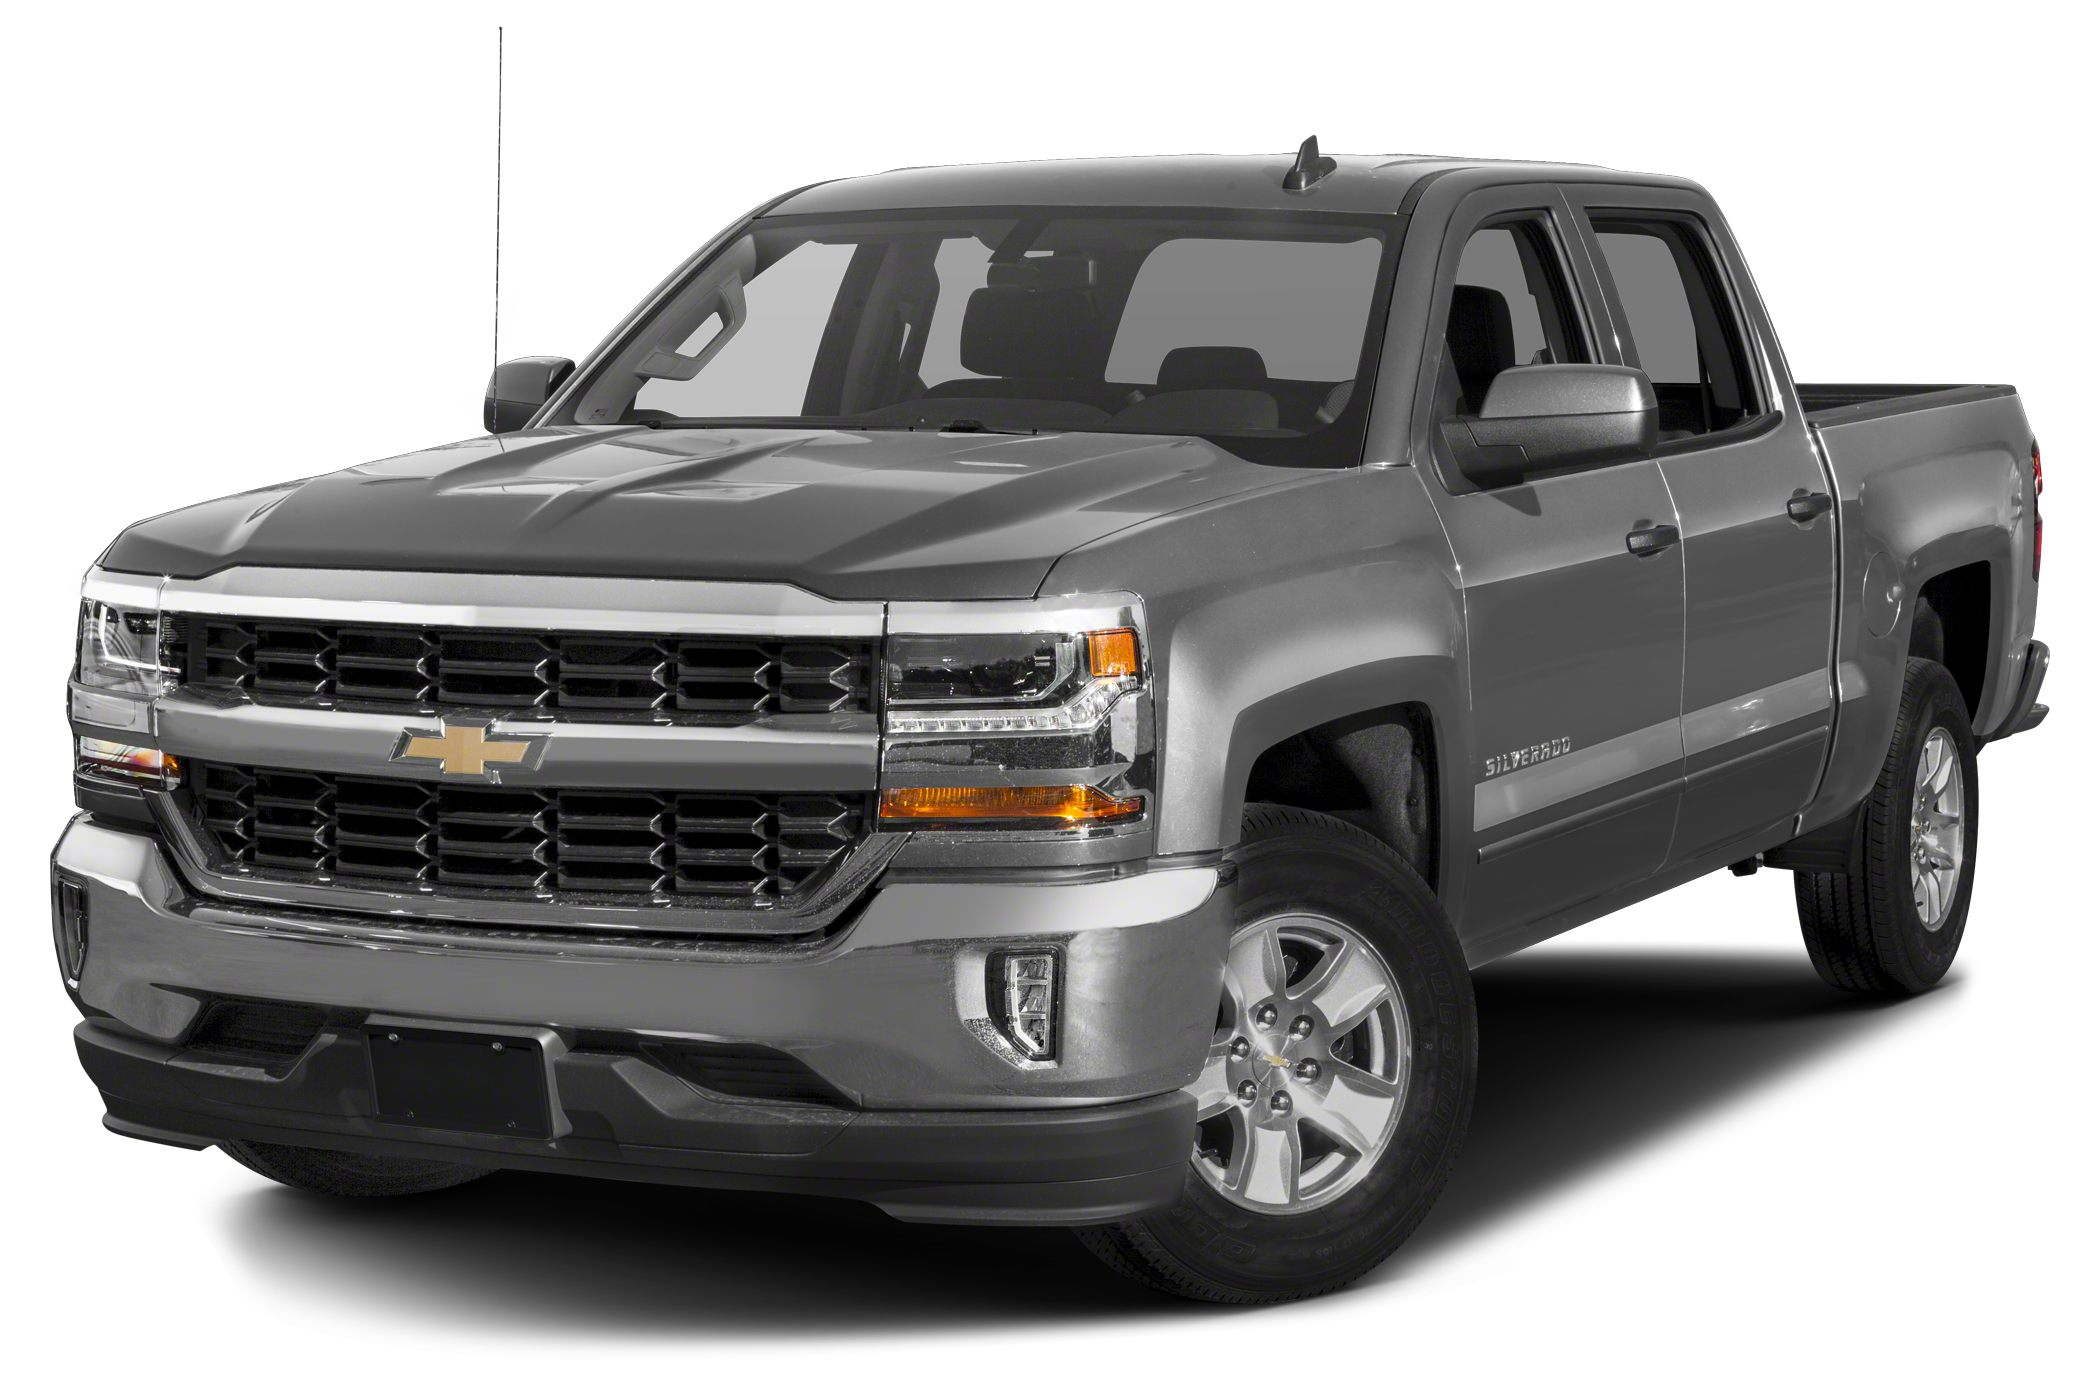 2016 Chevrolet Silverado 1500 Lt W 1lt 4x4 Crew Cab 5 75 Ft Box 143 5 In Wb Pricing And Options